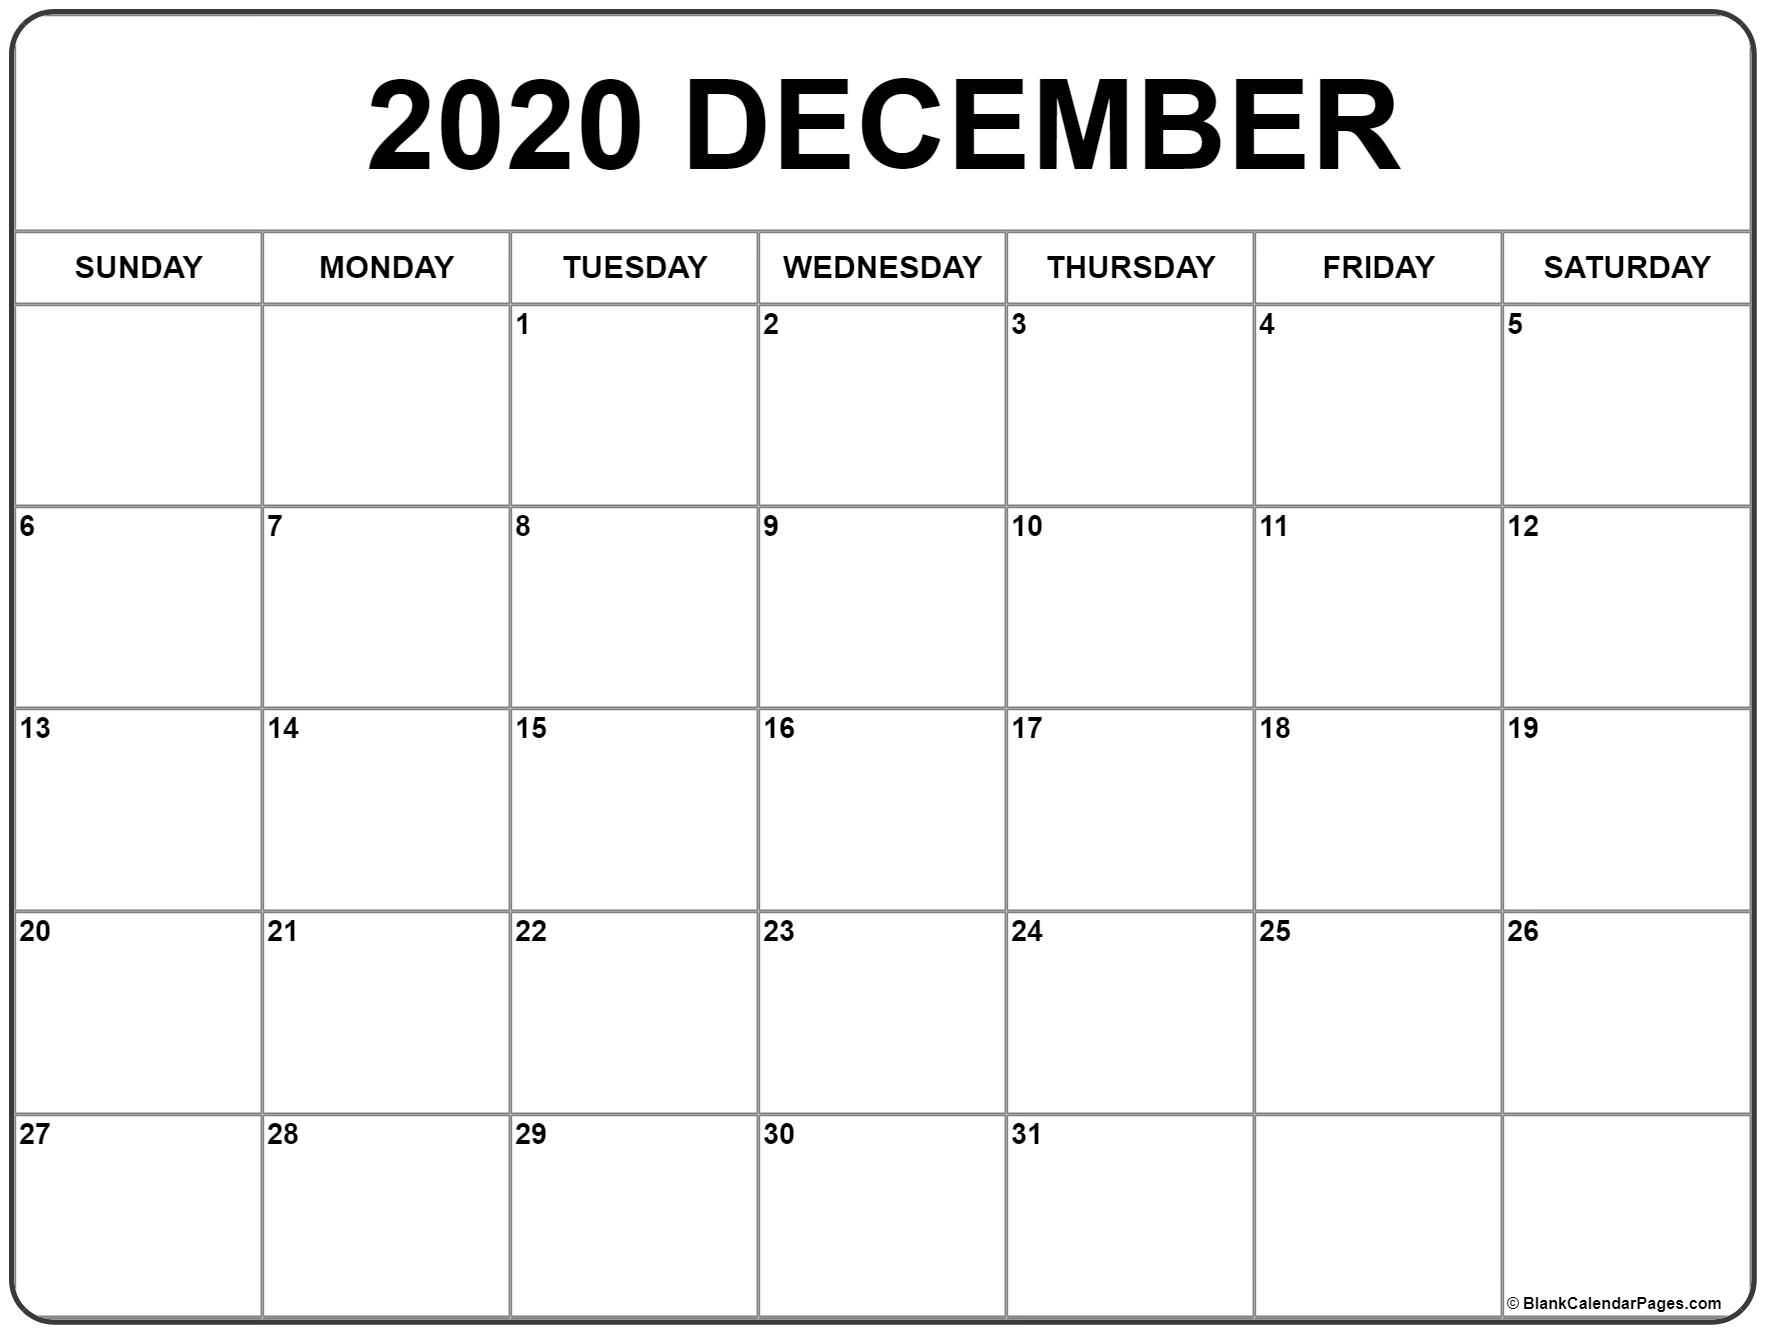 December 2020 Calendar Wallpaper December 2020 Printable Calendar Template #2020calendars